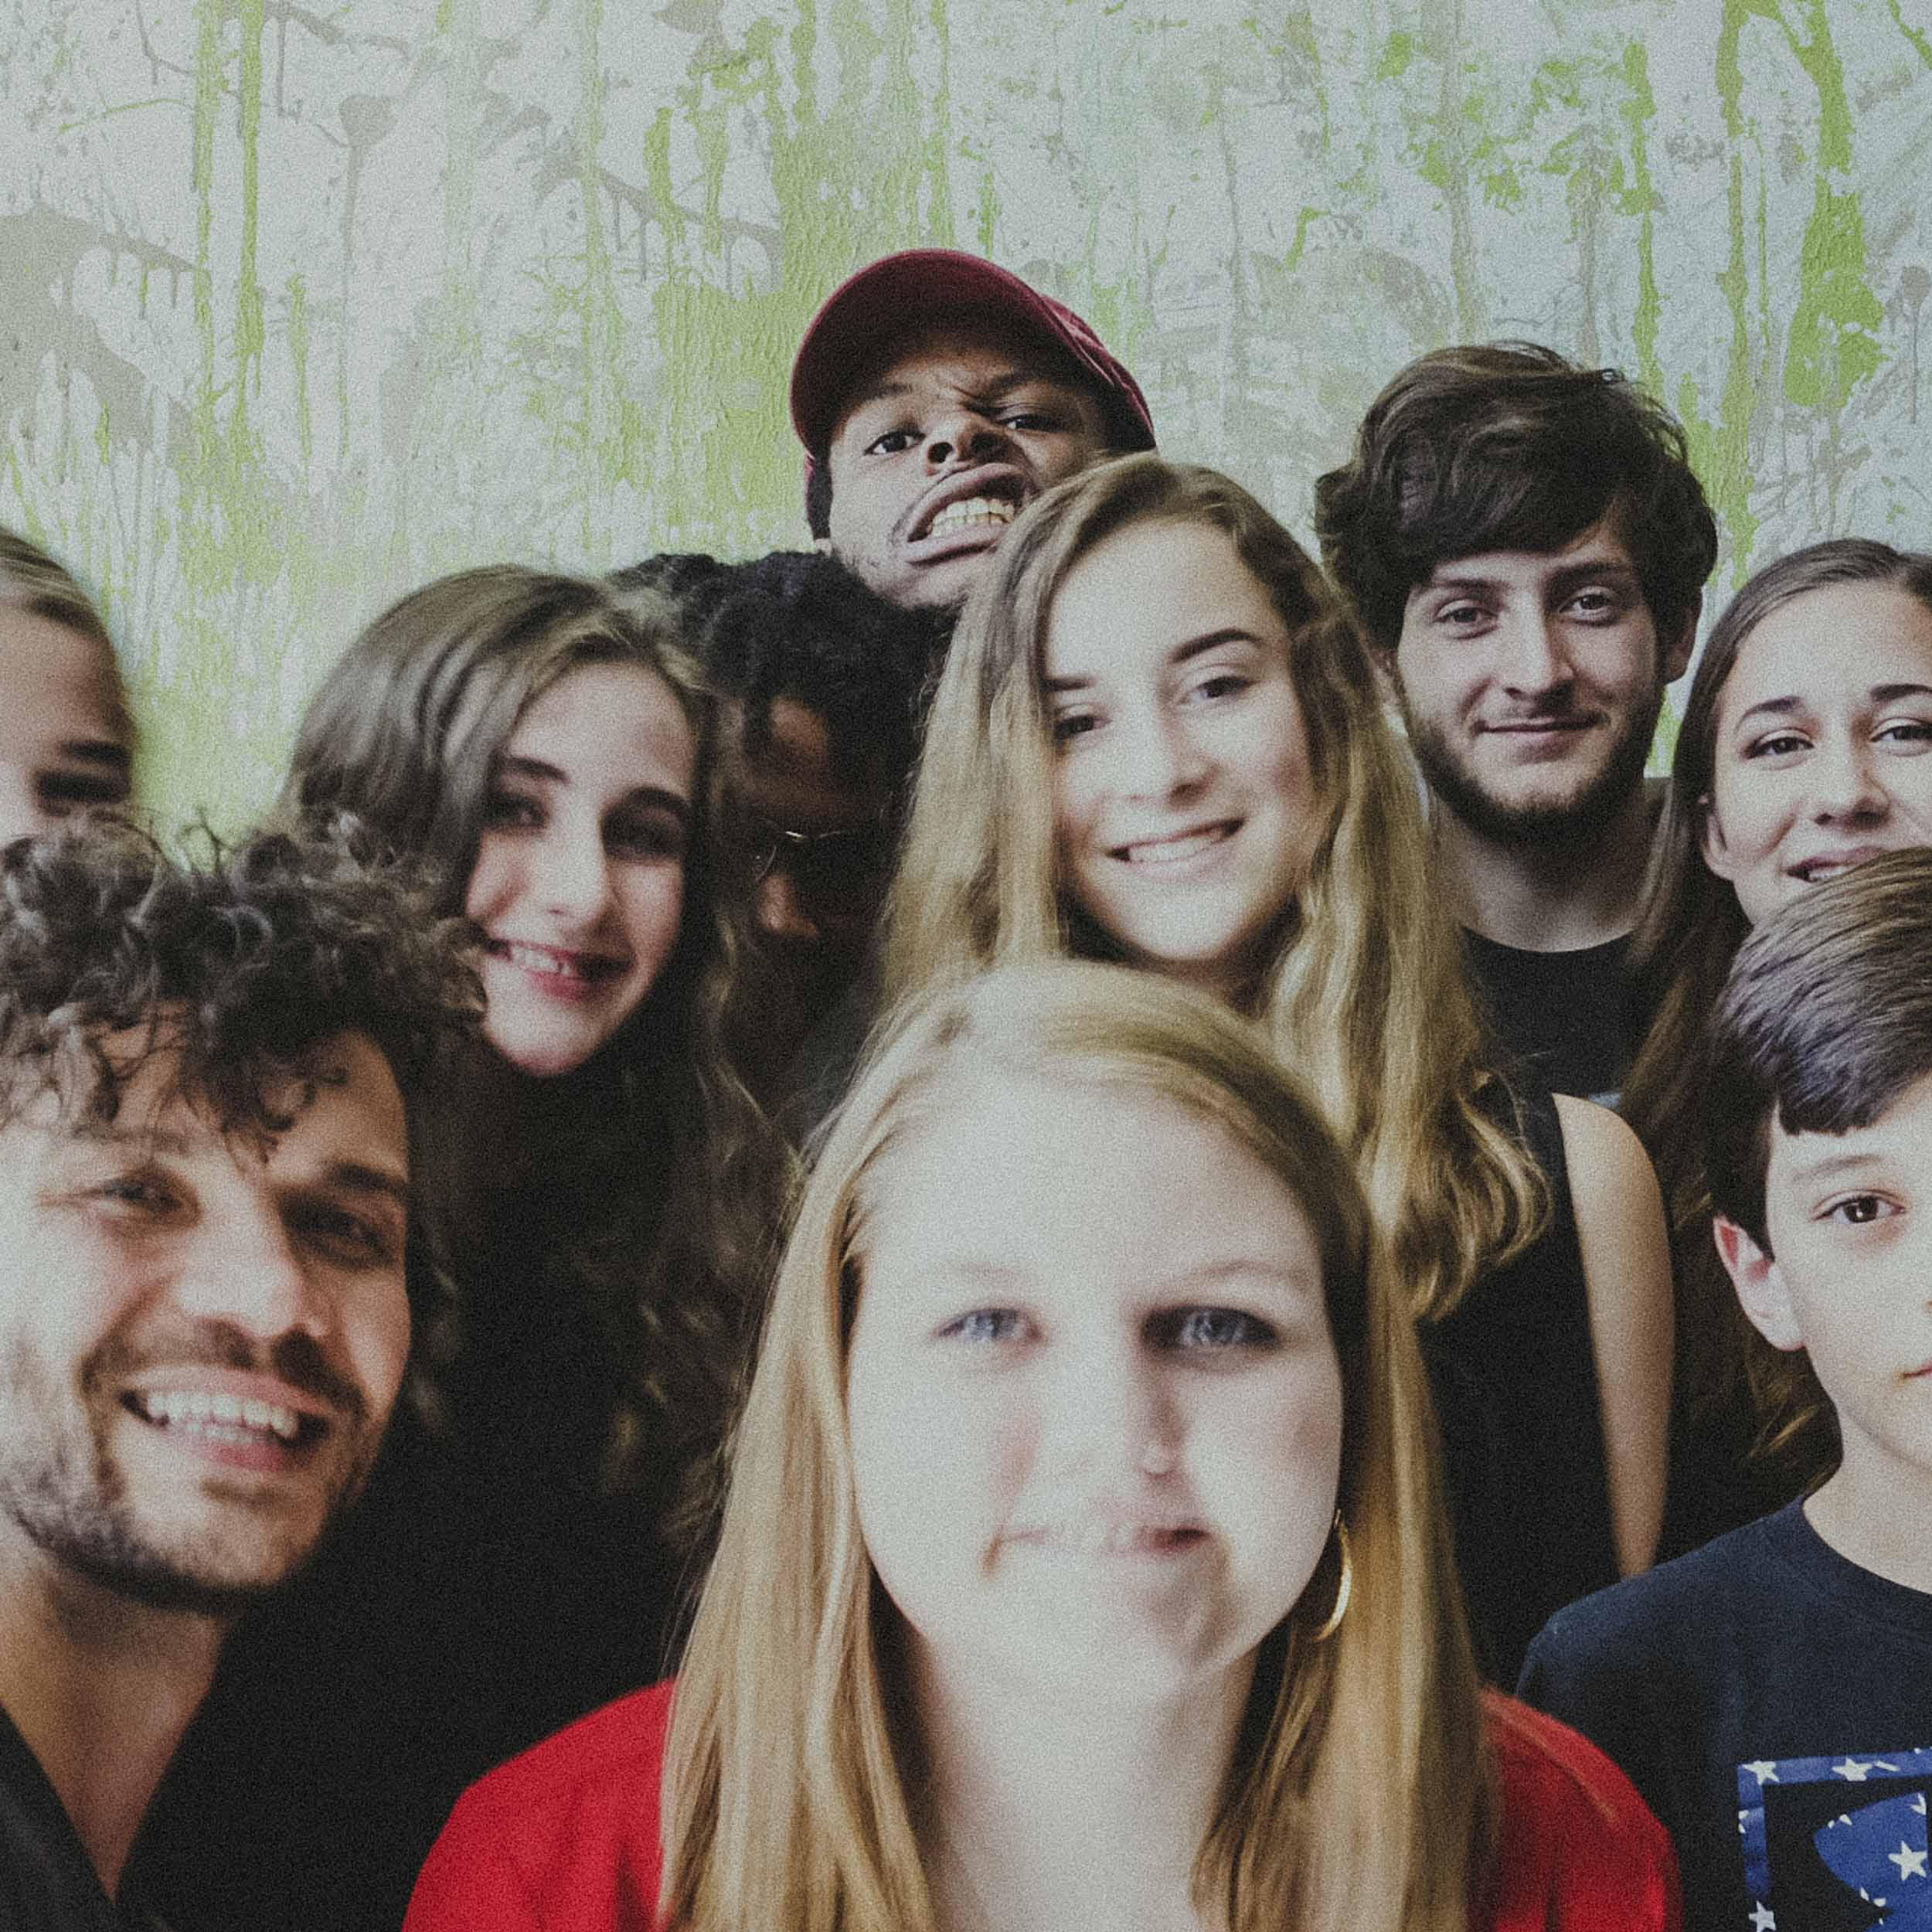 A group photo of campers after a shoot with Durham rapper, Defacto Thezpian